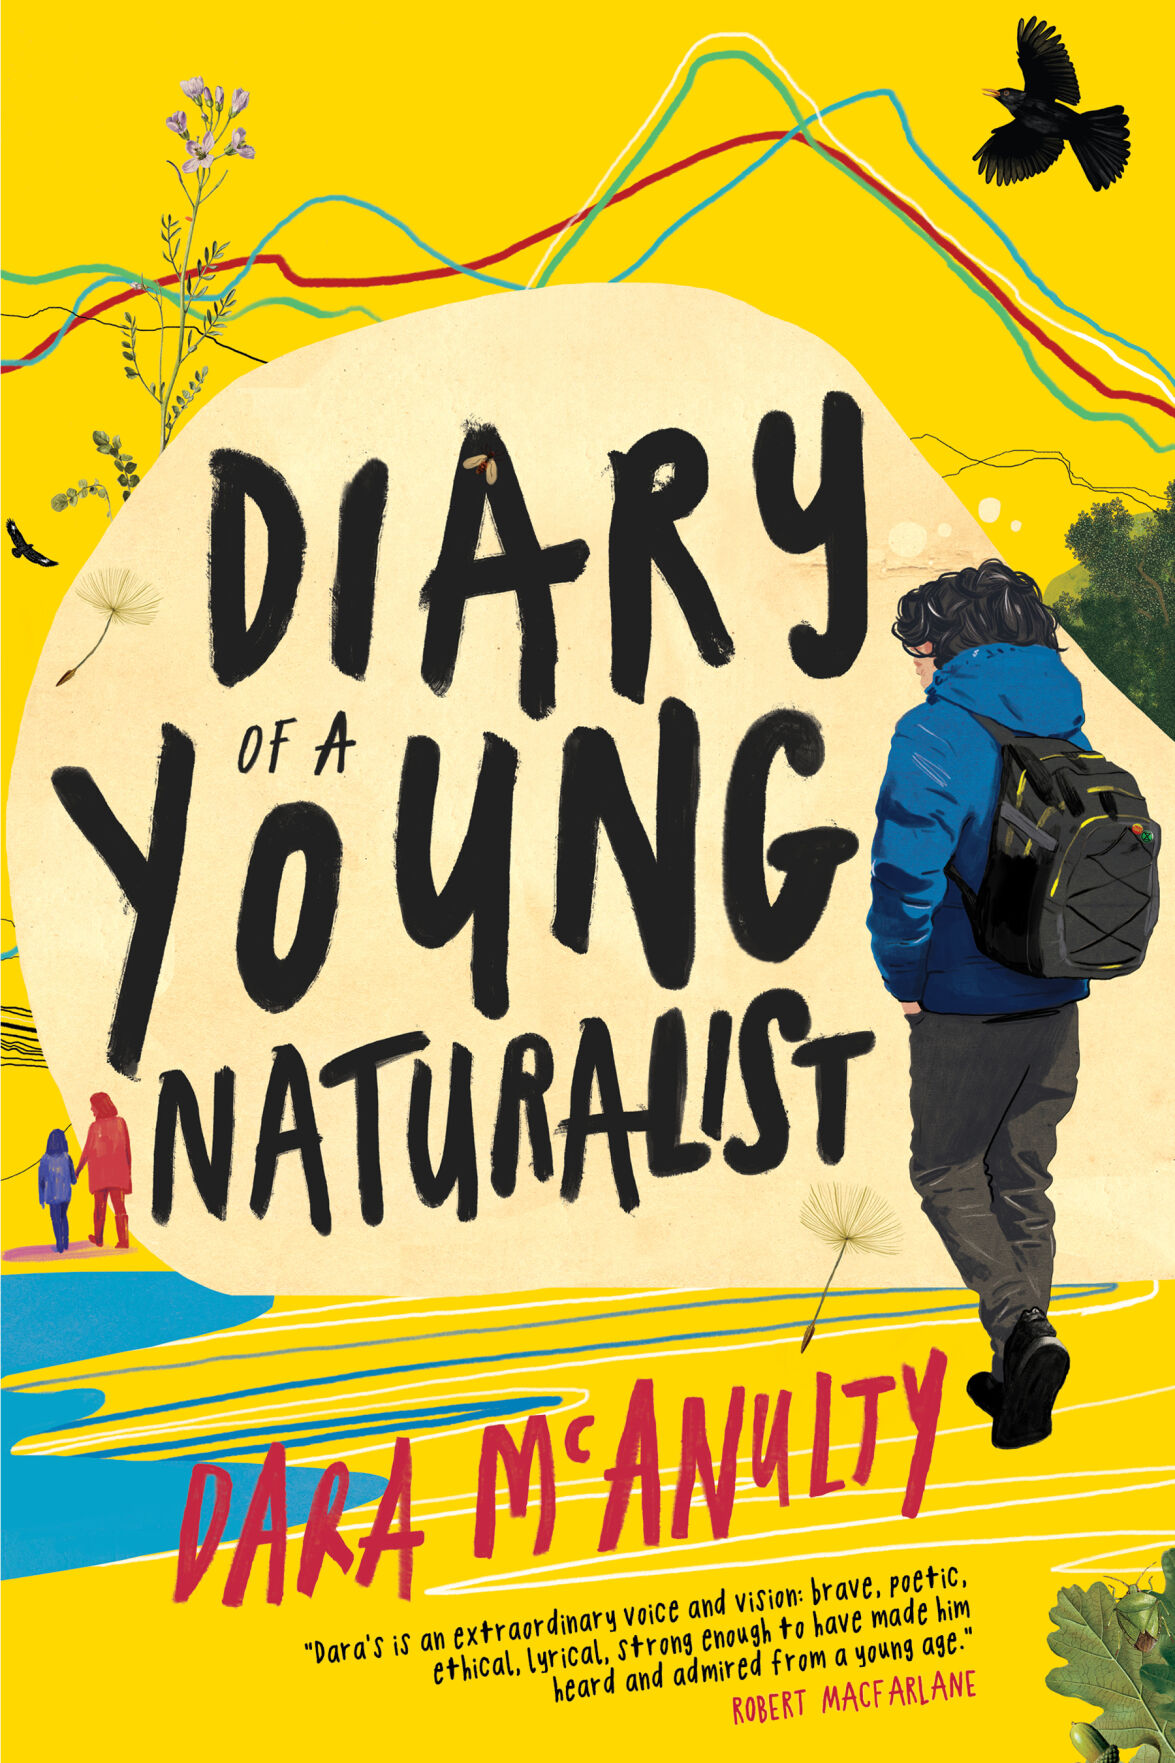 'Diary of a Young Naturalist'